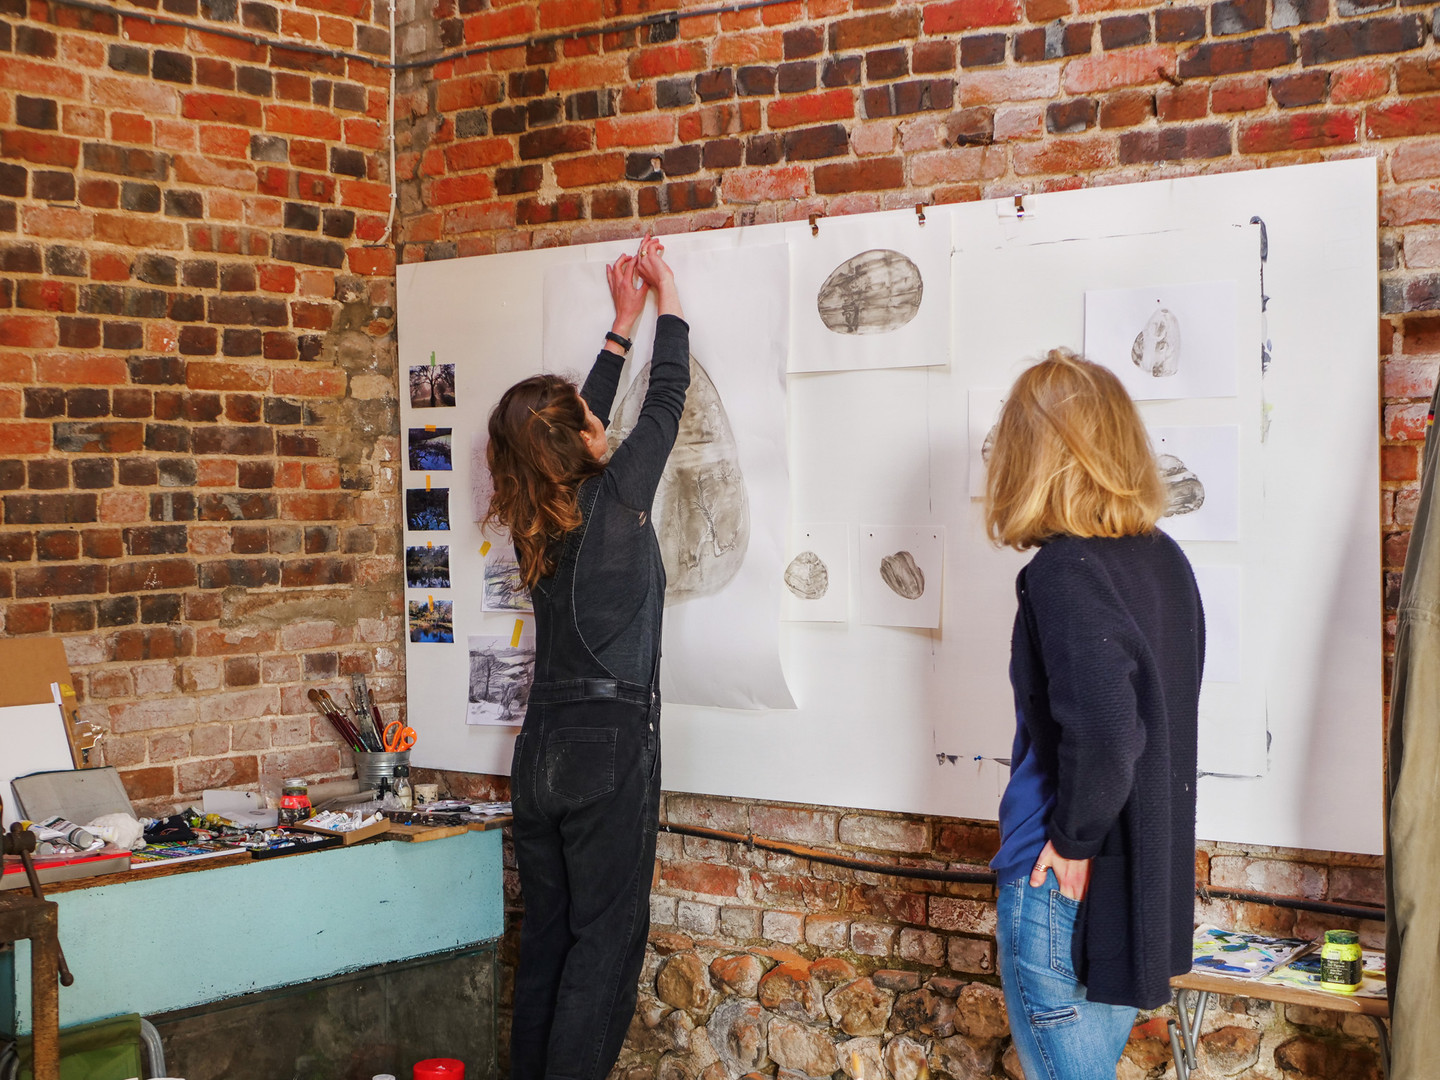 Tamsin Relly and Evy Jokhova in the gallery barn